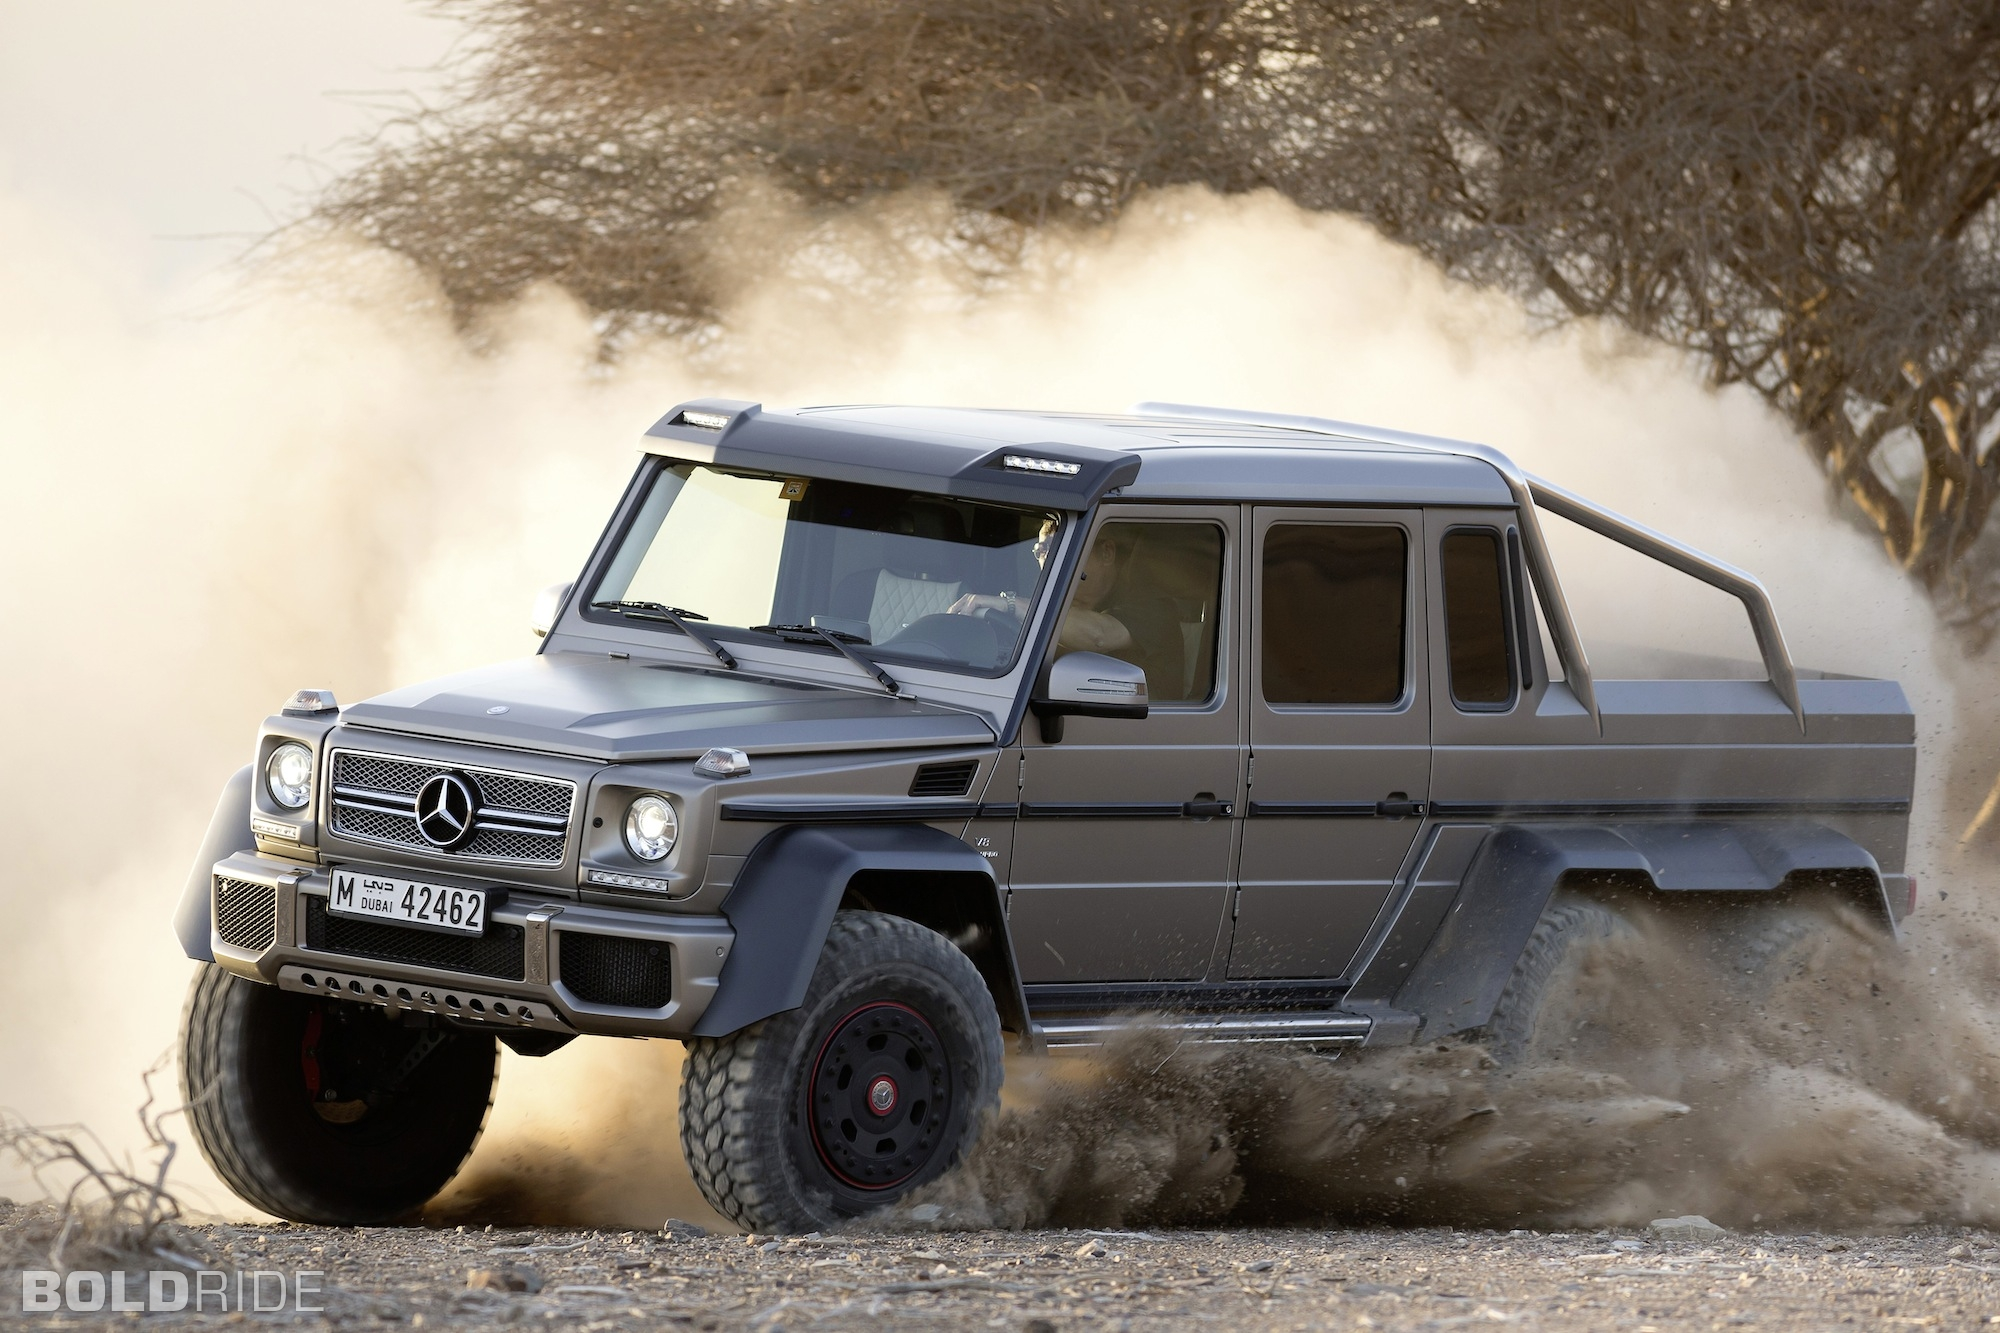 2013 mercedes benz g63 amg 6x6 4x4 offroad suv u wallpaper. Black Bedroom Furniture Sets. Home Design Ideas